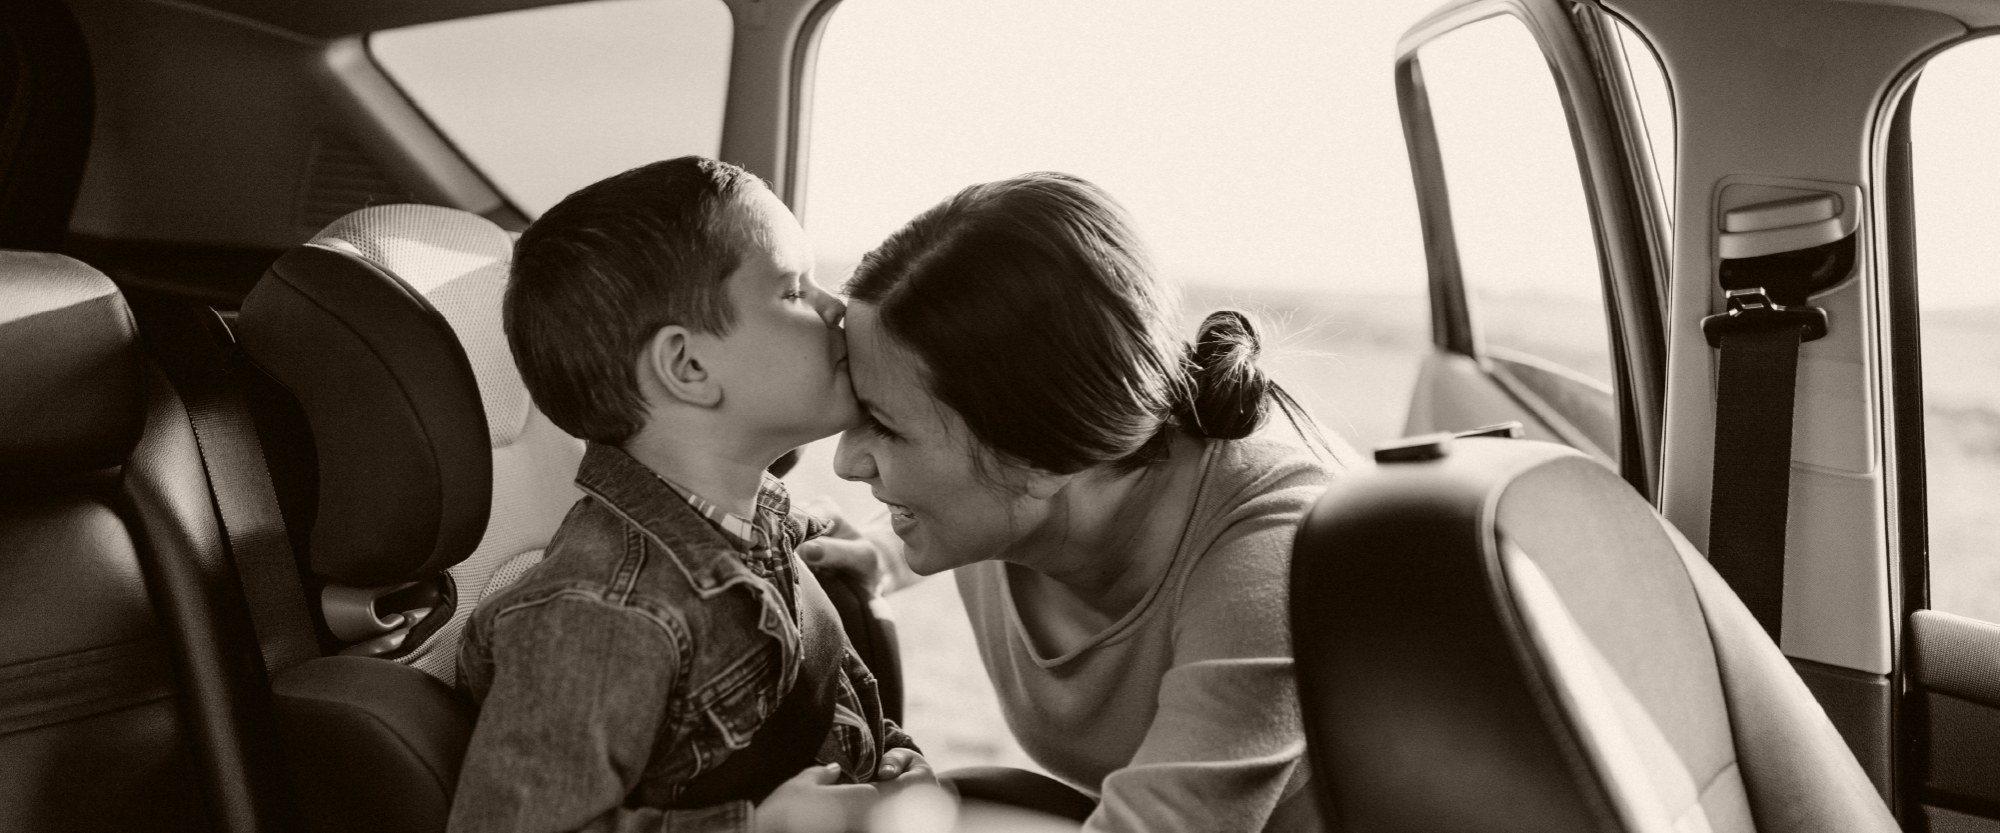 Photo of kid kissing mom after being buckled into car seat in back